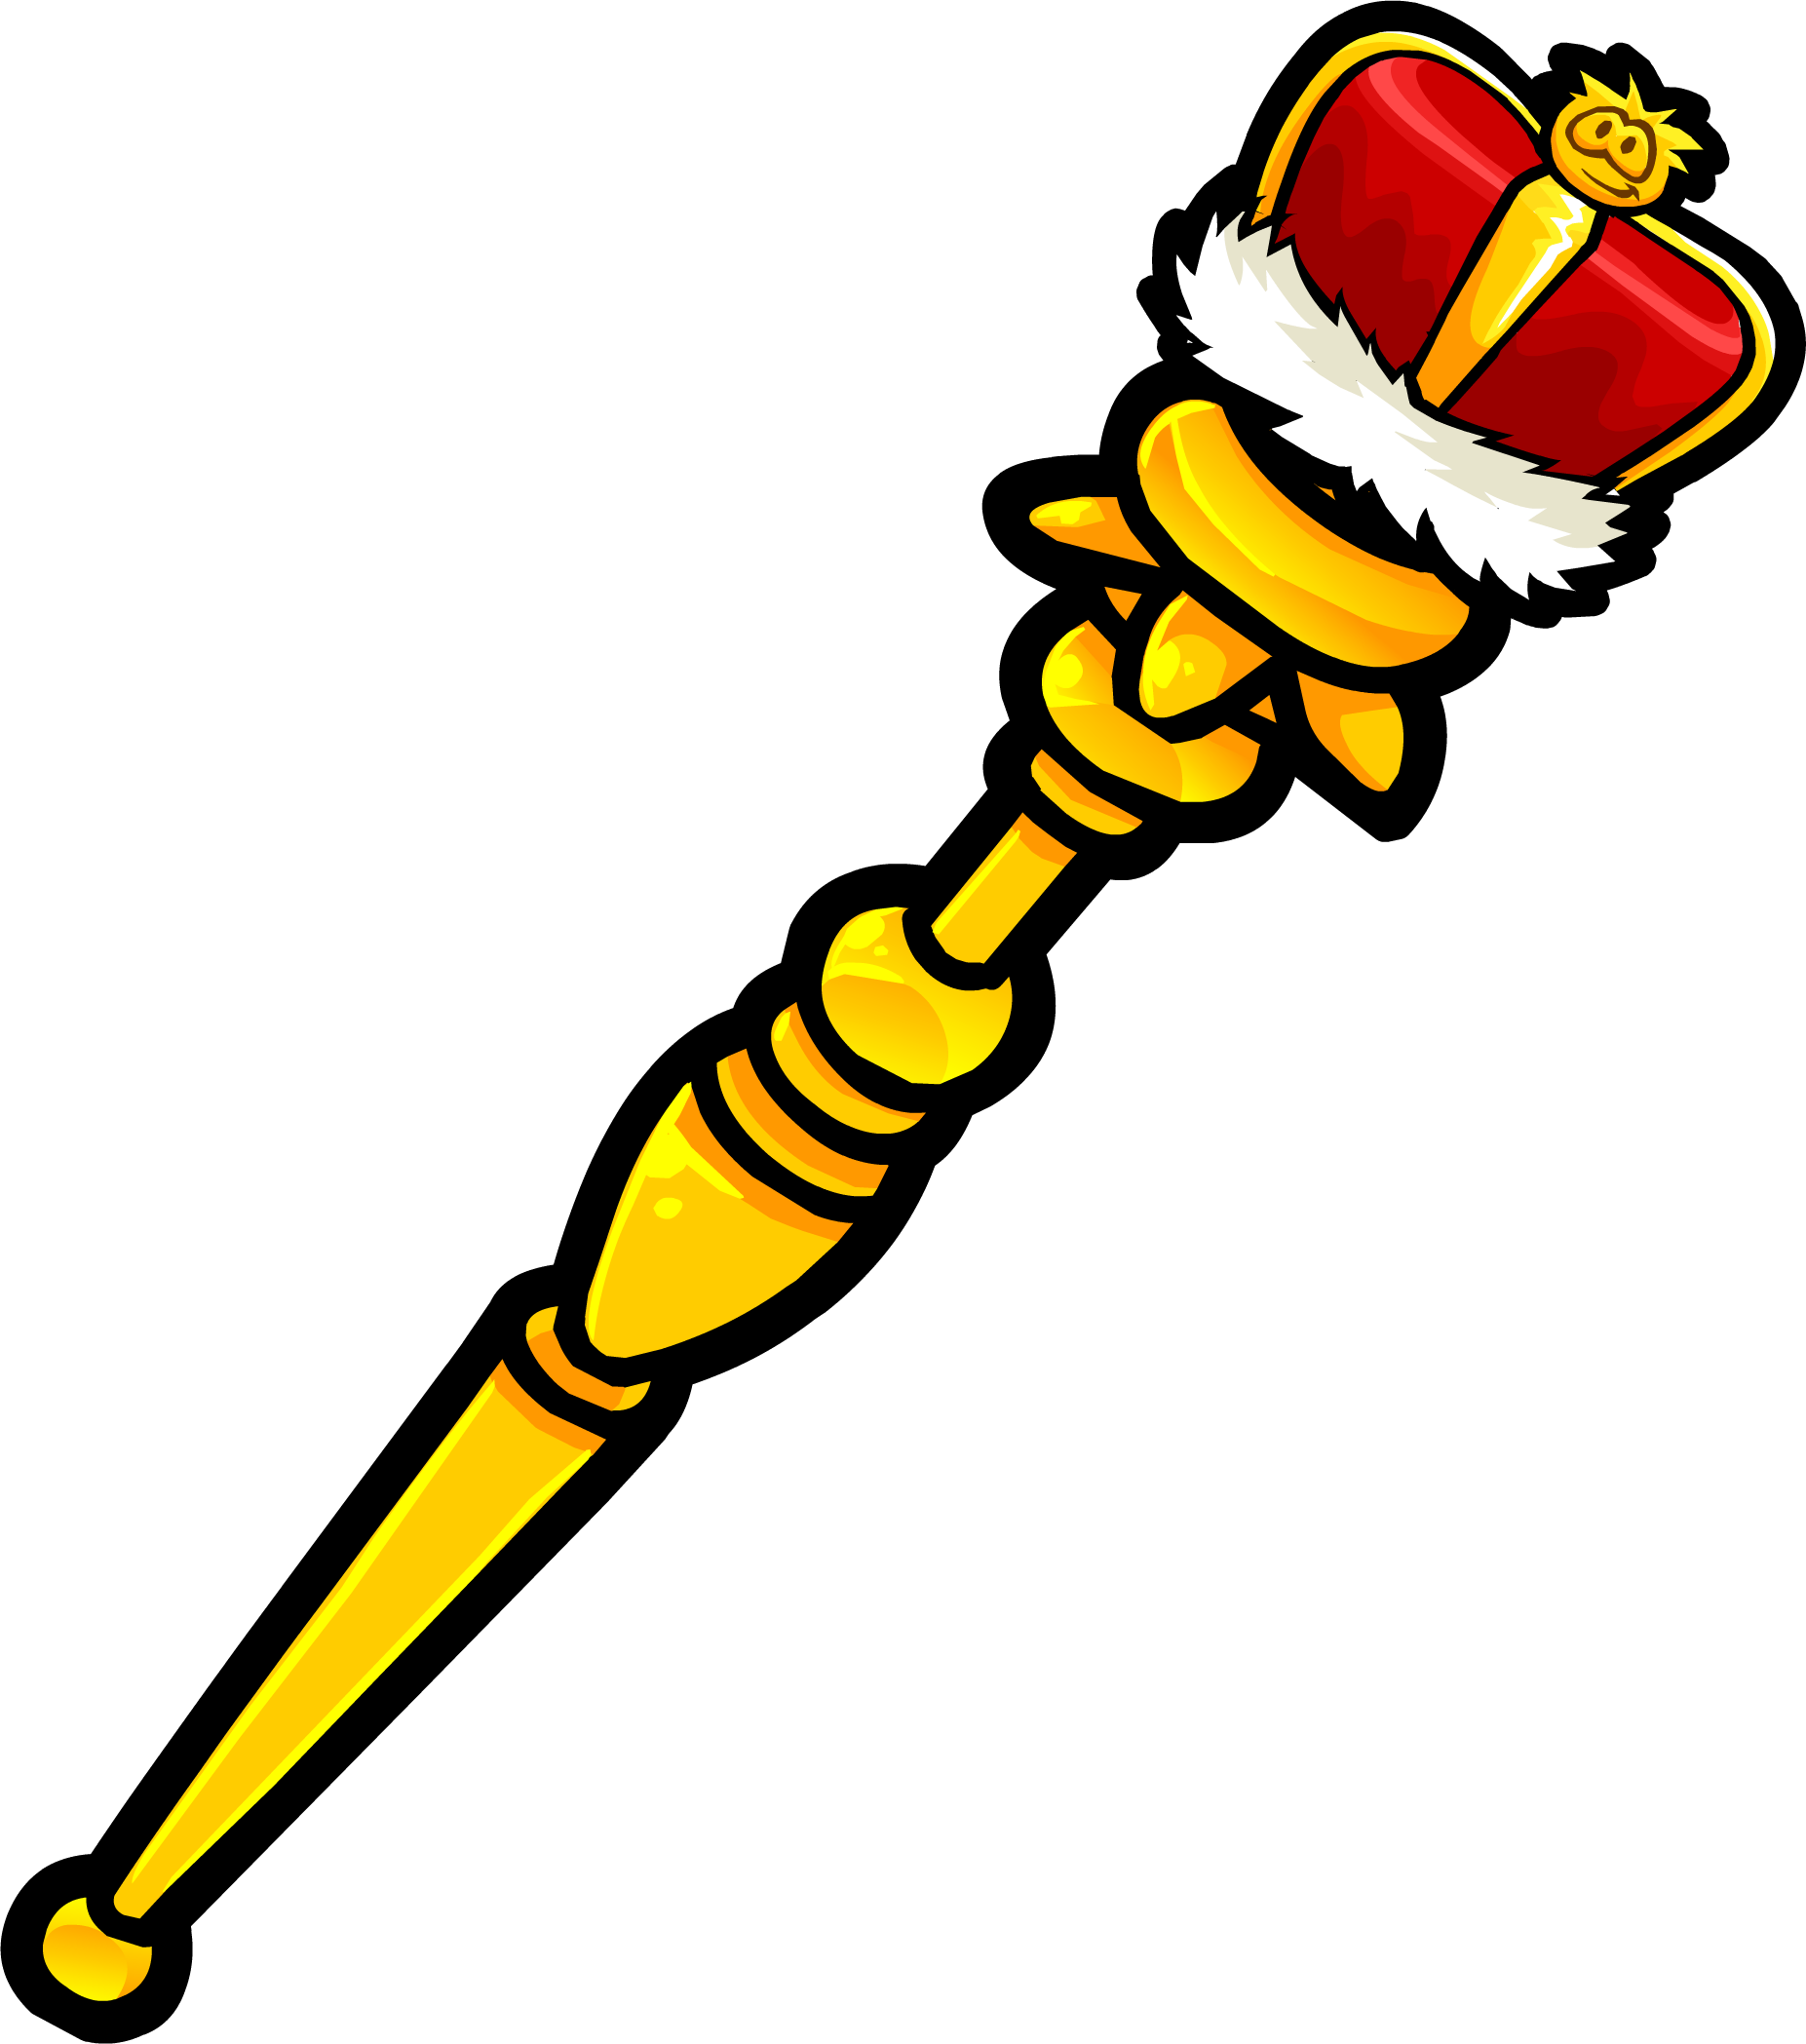 Throne clipart king cape. Staff s pencil and